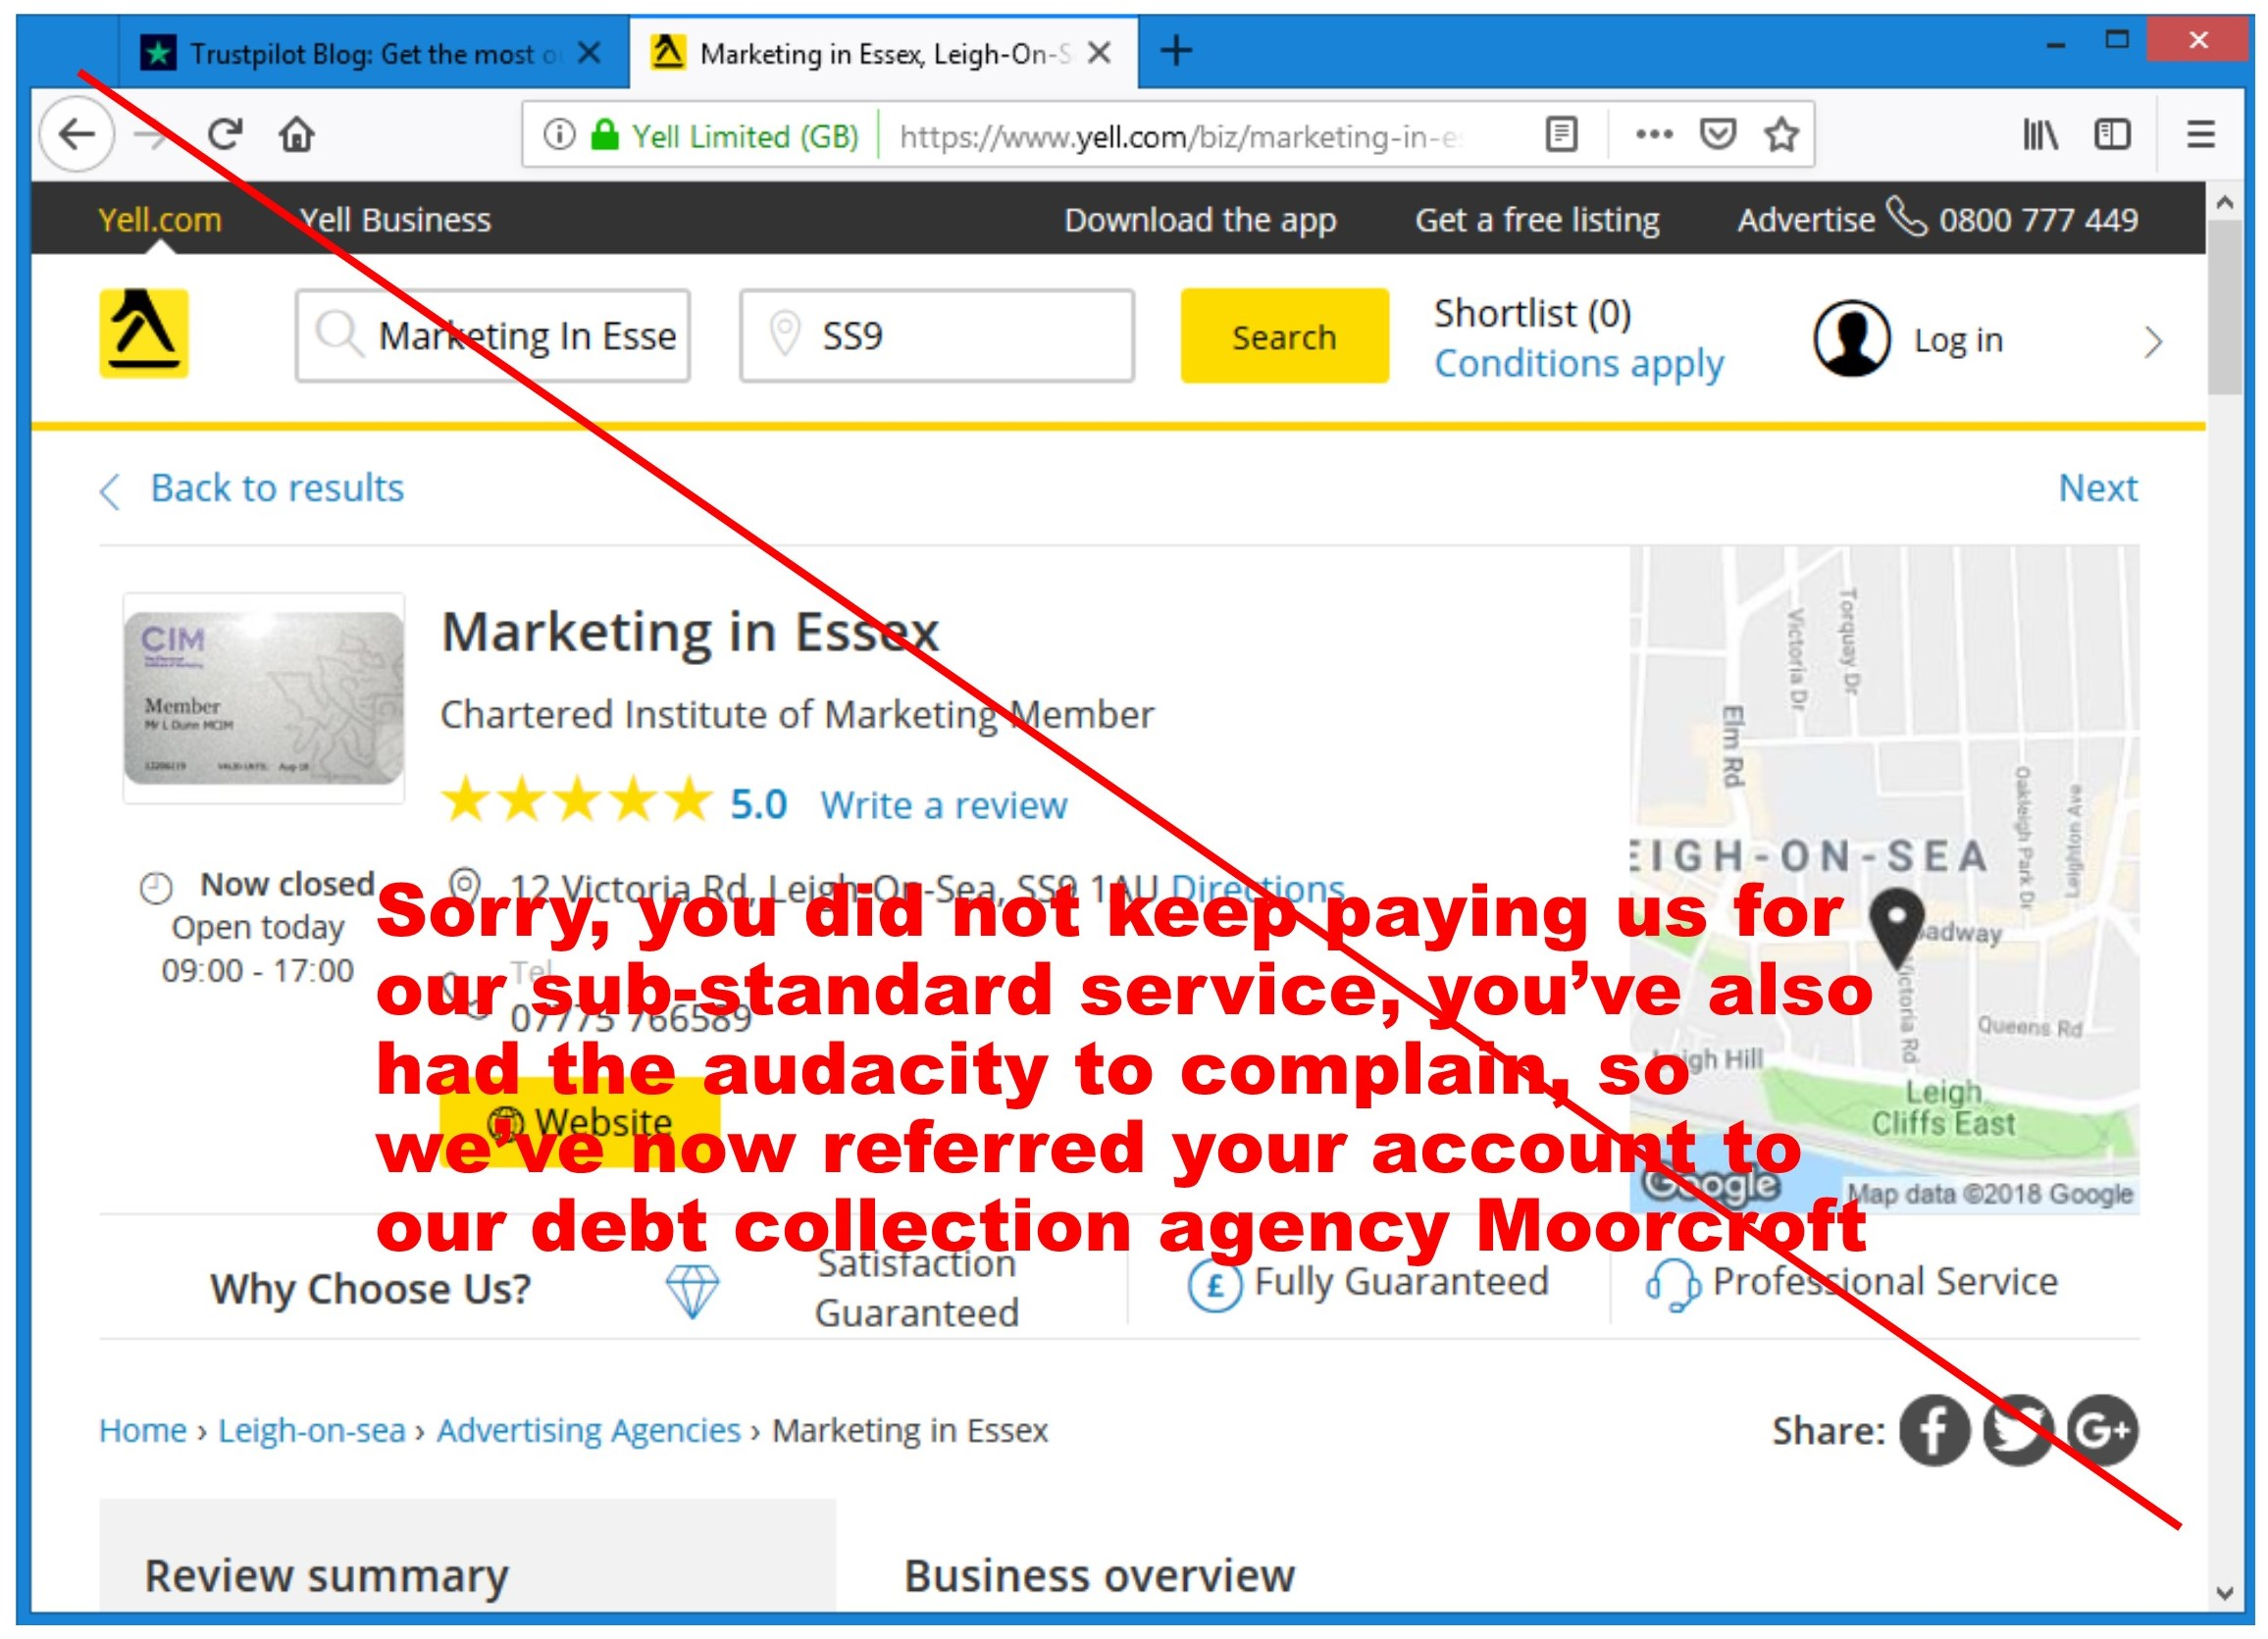 Sorry, you did not keep paying us for our sub-standard service, you've also had the audacity to complain, so we've now referred your account to our debt collection agency Moorcroft